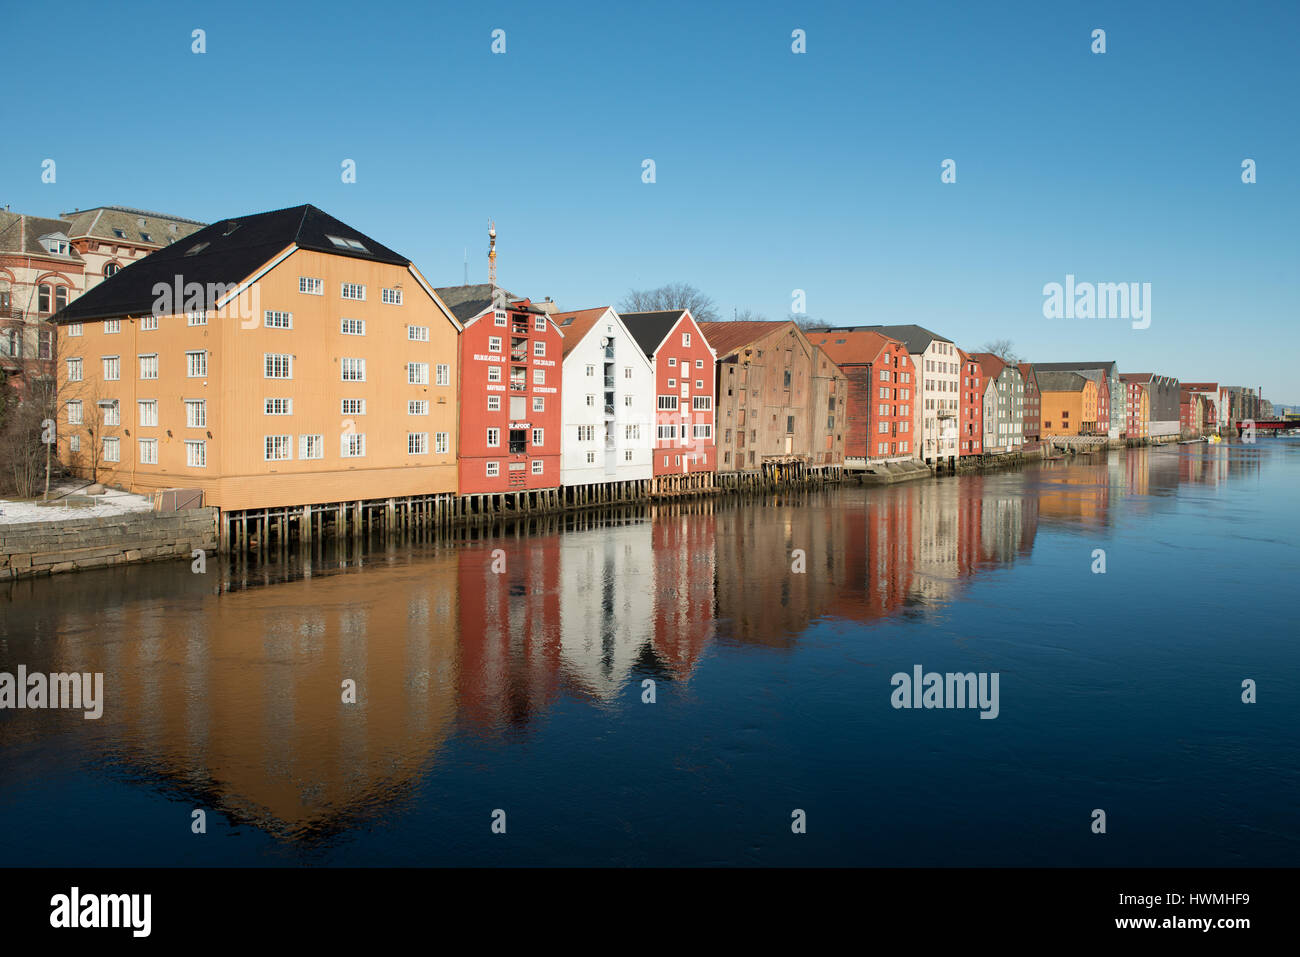 The Wharves of Trondheim, Norway - Stock Image